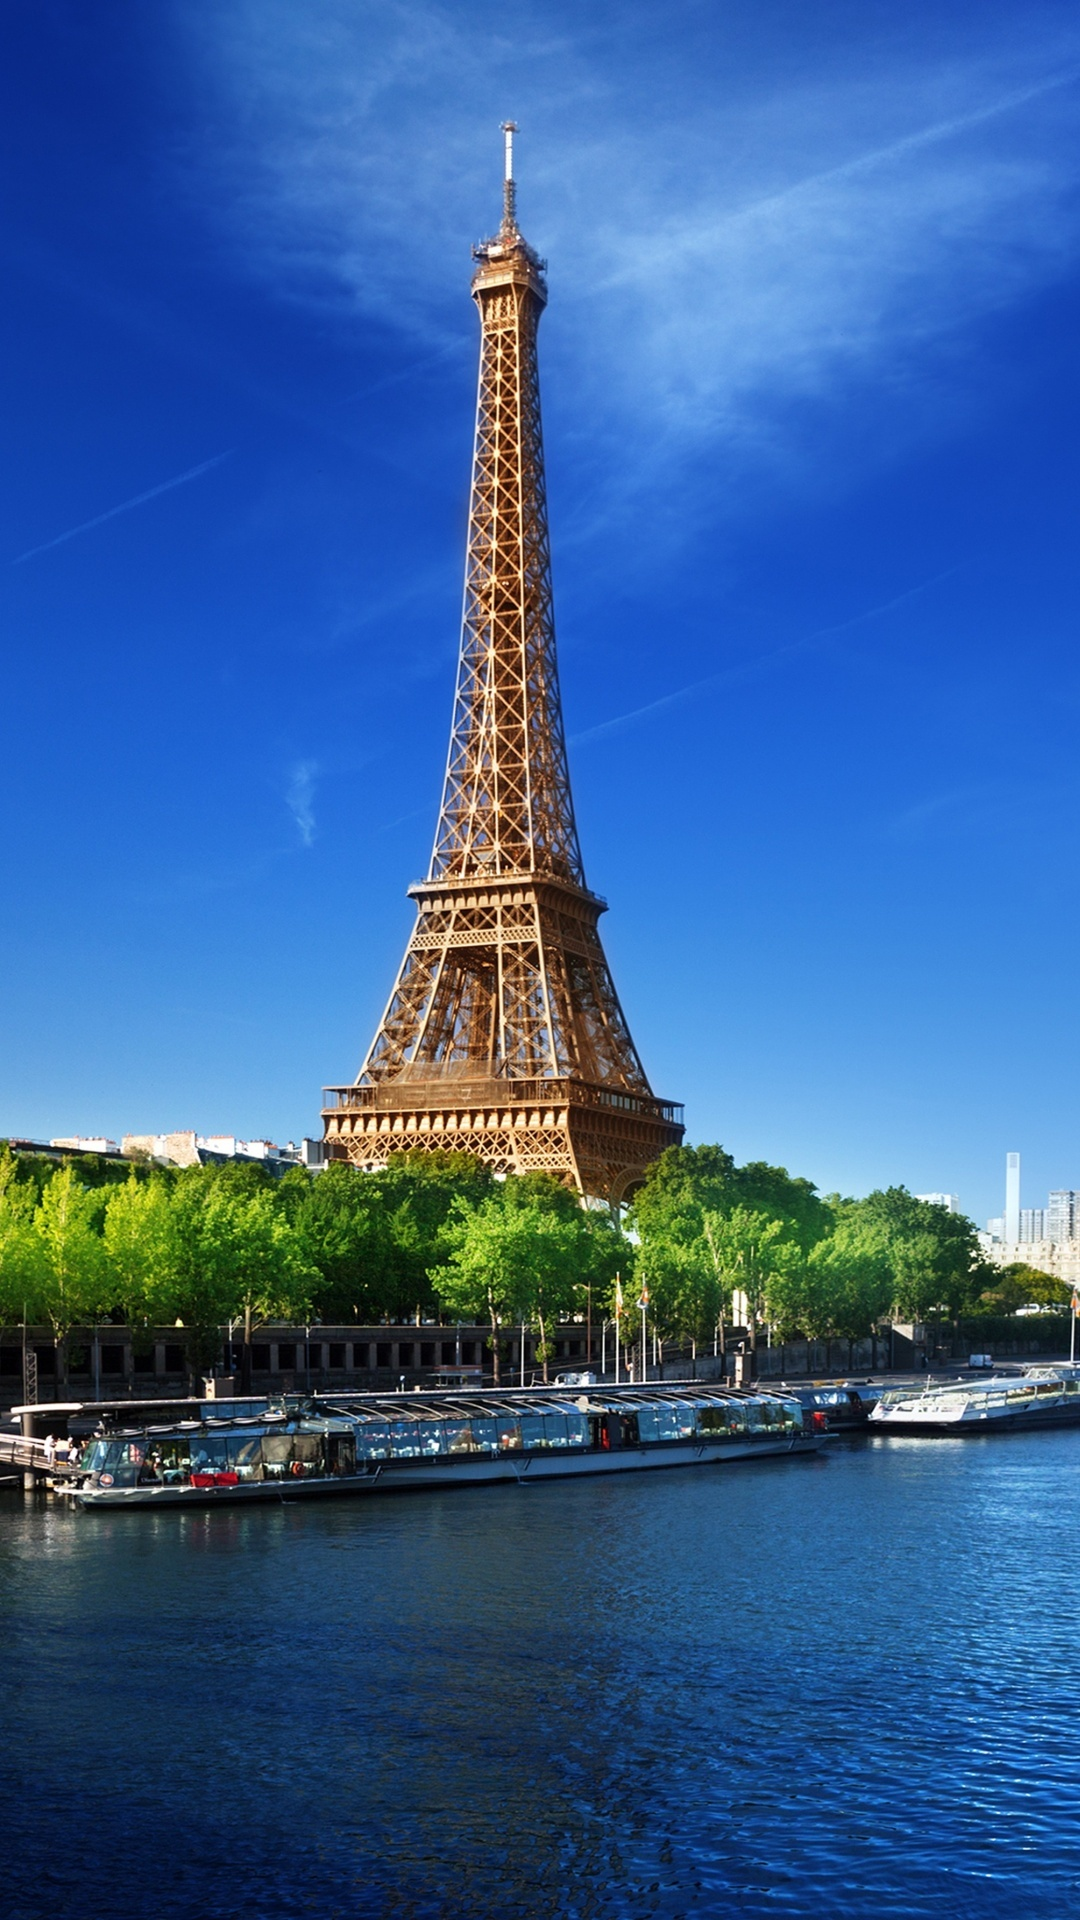 The Eiffel Tower River Wallpapers 1080x1920 614859